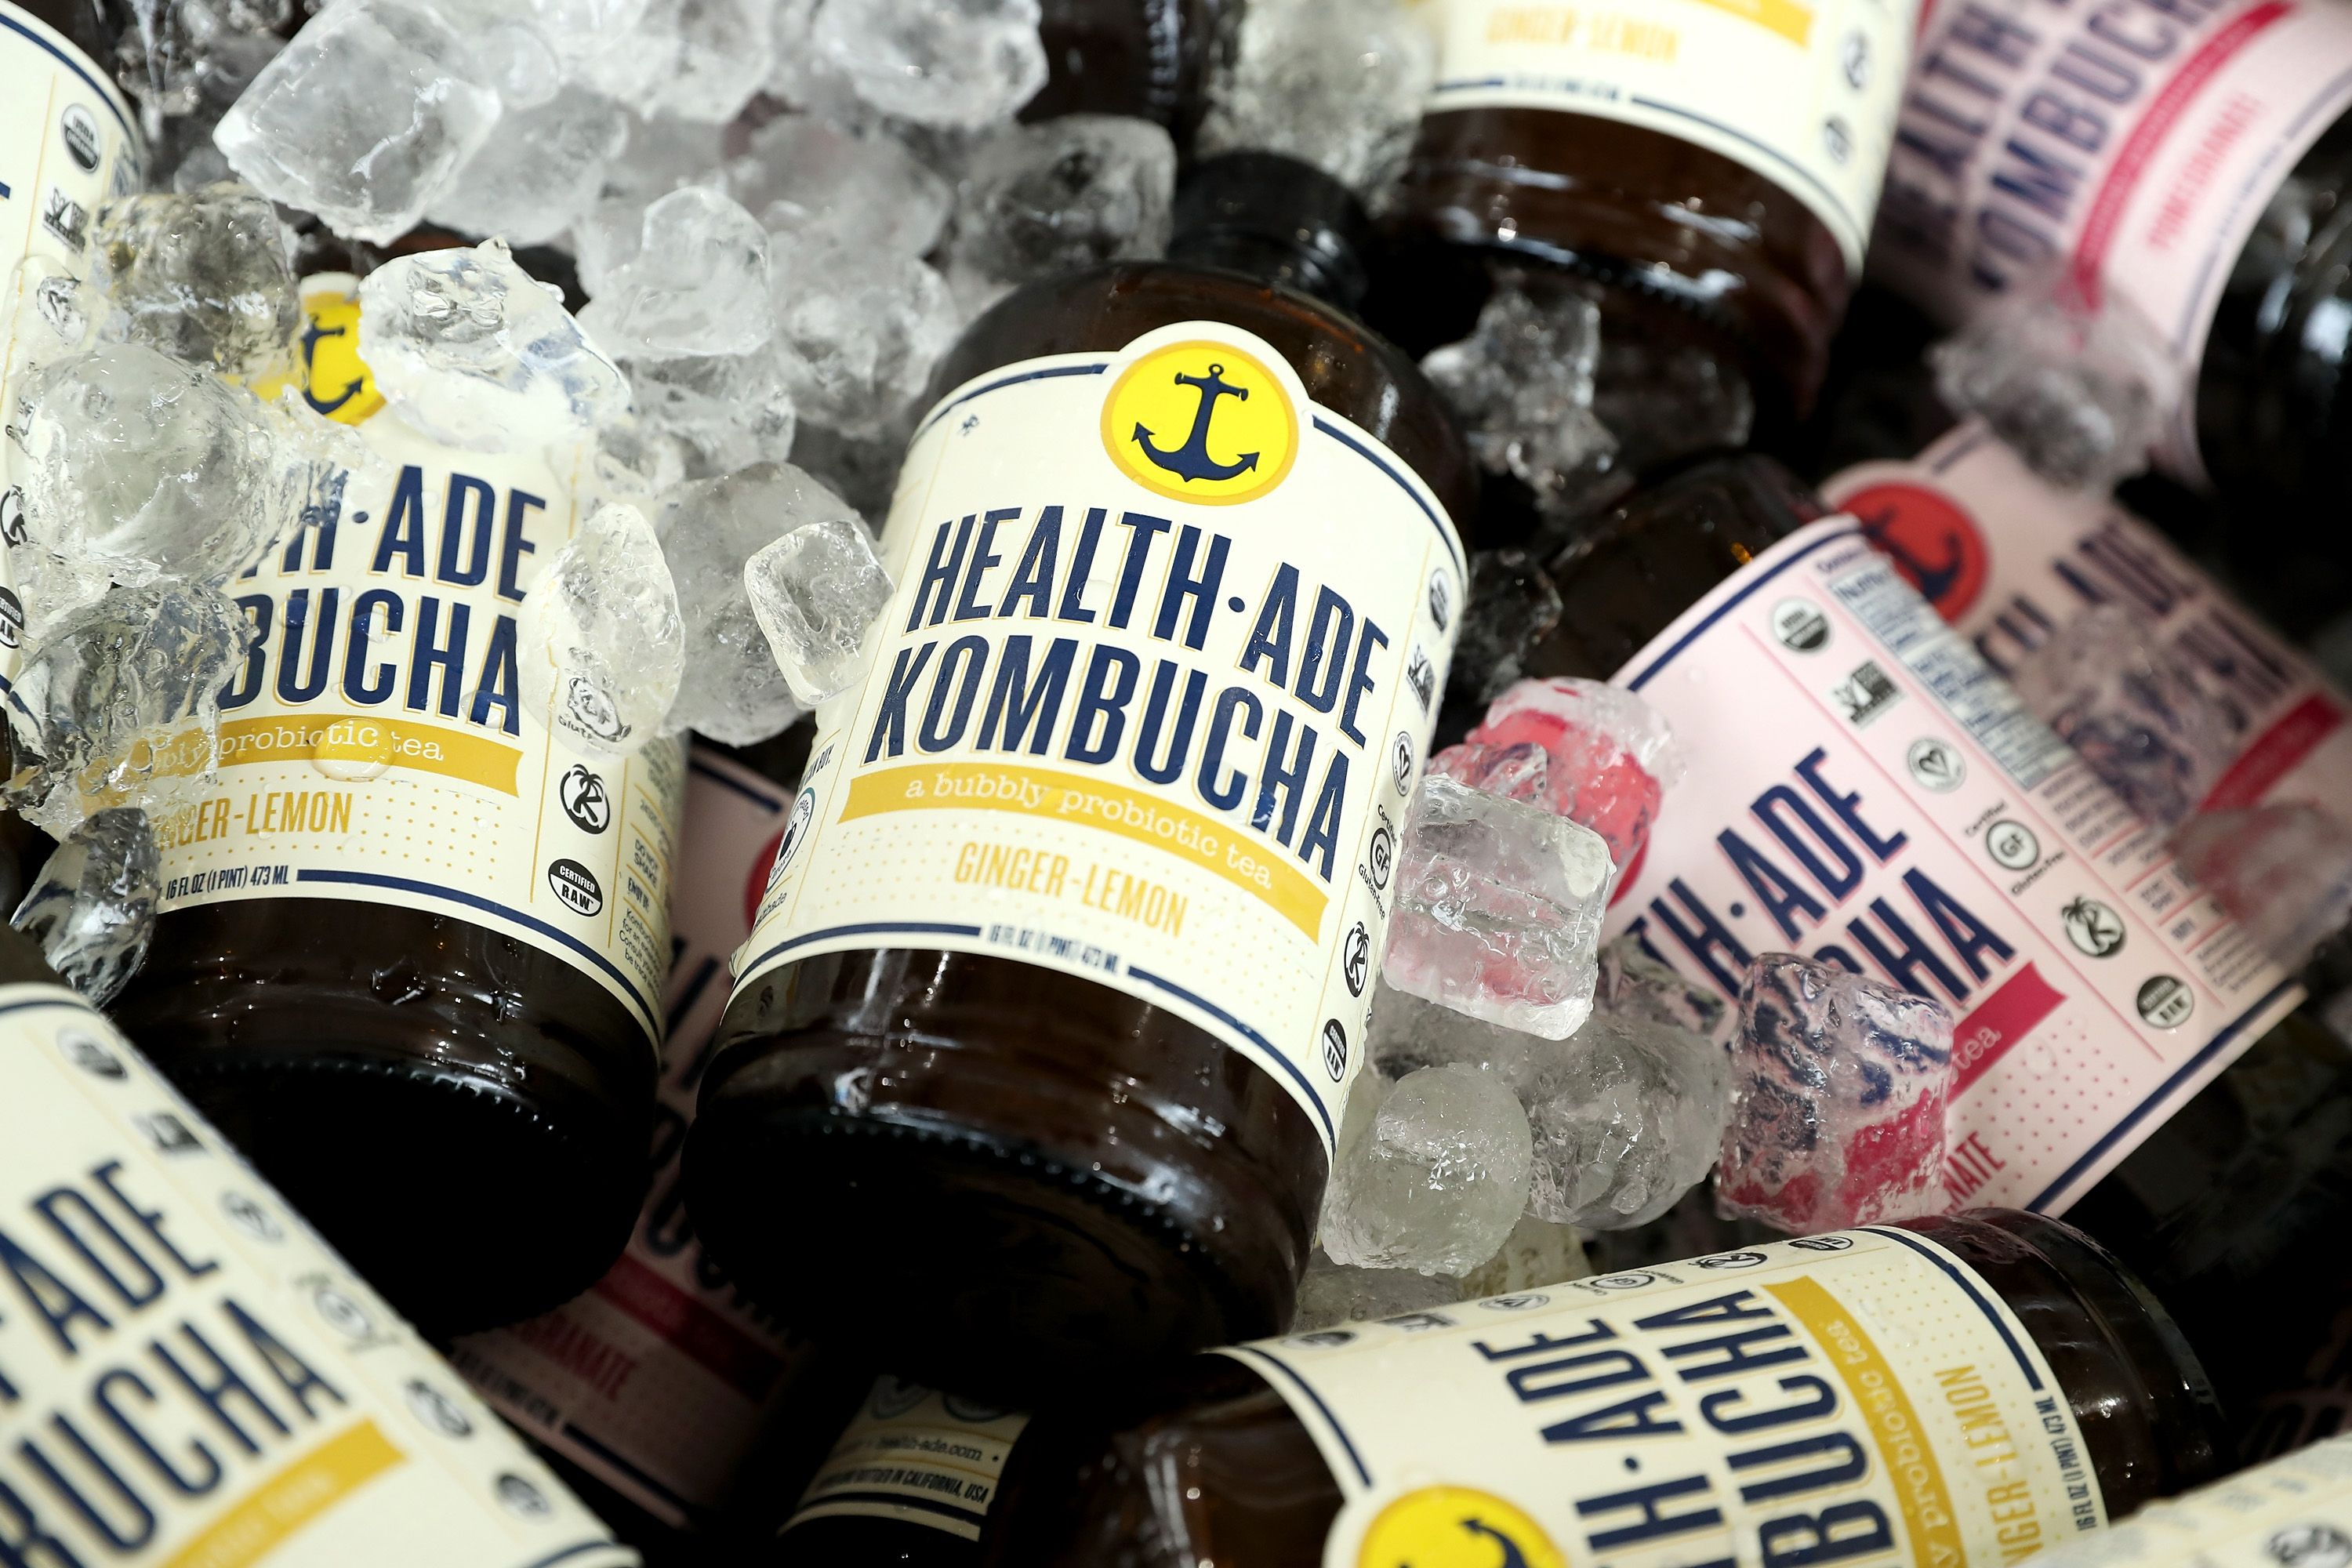 6 Health Benefits of Kombucha You Should Know About, According to Dietitians